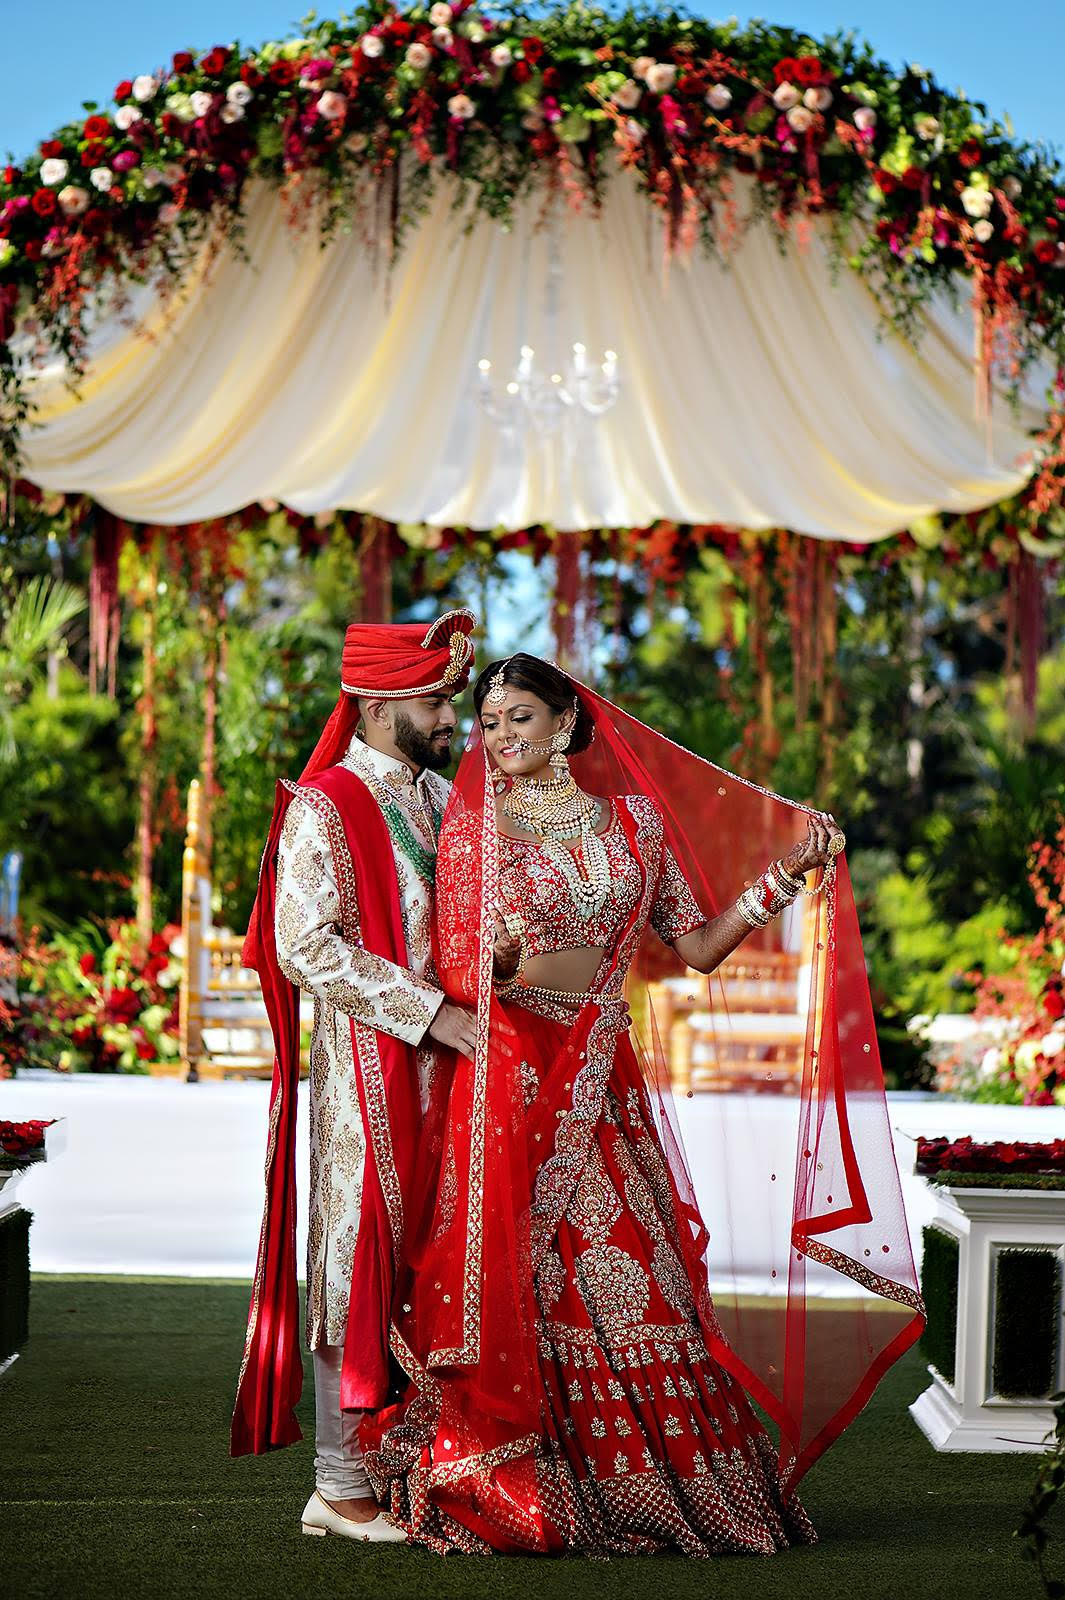 Manali & Nikesh Patel - Utopian Events was at the top of my list when choosing a decorator for my wedding. After speaking with Kinjal Patel, Event and Sales Manager, for the first time I was committed to having Utopian bring my wedding to life.Decor is such a crucial part of a wedding, the Utopian team truly knows how to bring a bride's vision to life. They also have so many wonderful recommendations to turn a simple idea into the highlight of your event. Kinjal was very generous, open-minded, and full of ideas she knew would make my wedding complete. She took the time to talk to me for about 30 minutes when we were first introduced just to get to know me so she could better understand my vision. I had never received such courtesy from a vendor before. We clicked right away and she began to show me photos of decor she thought would match my vision. We talked multiple times in person and over the phone to finalize every detail of the wedding events. Kinjal was so easy to talk, and so easy to get a hold of. Other vendors I would have to call over and over, but with Utopian, I never had that problem.My major focus for decor was my Mandap. I wanted it to be something spectacular, like out of a movie. Florals, water features, greenery, candles, chandeliers, the works! Kinjal knew how much my mandap meant to me, so she presented me with multiple sketches and photos for inspiration (which she did for all my events). Finally, when the day came to see my mandap, I was blown away. I had to catch my breath before I could take in the glorious beauty of my dream mandap. It was just how I imagined it in my head, and it was brought to life by the Utopian Events team. I loved it so much, it became the major backdrop for my wedding photos. I wanted the beauty of that magnificent creation to shine in my photos.Aside from creating my dream mandap, Kinjal and the Utopian Events team truly went above and beyond my expectations to create my dream wedding. All my pre-wedding events were d